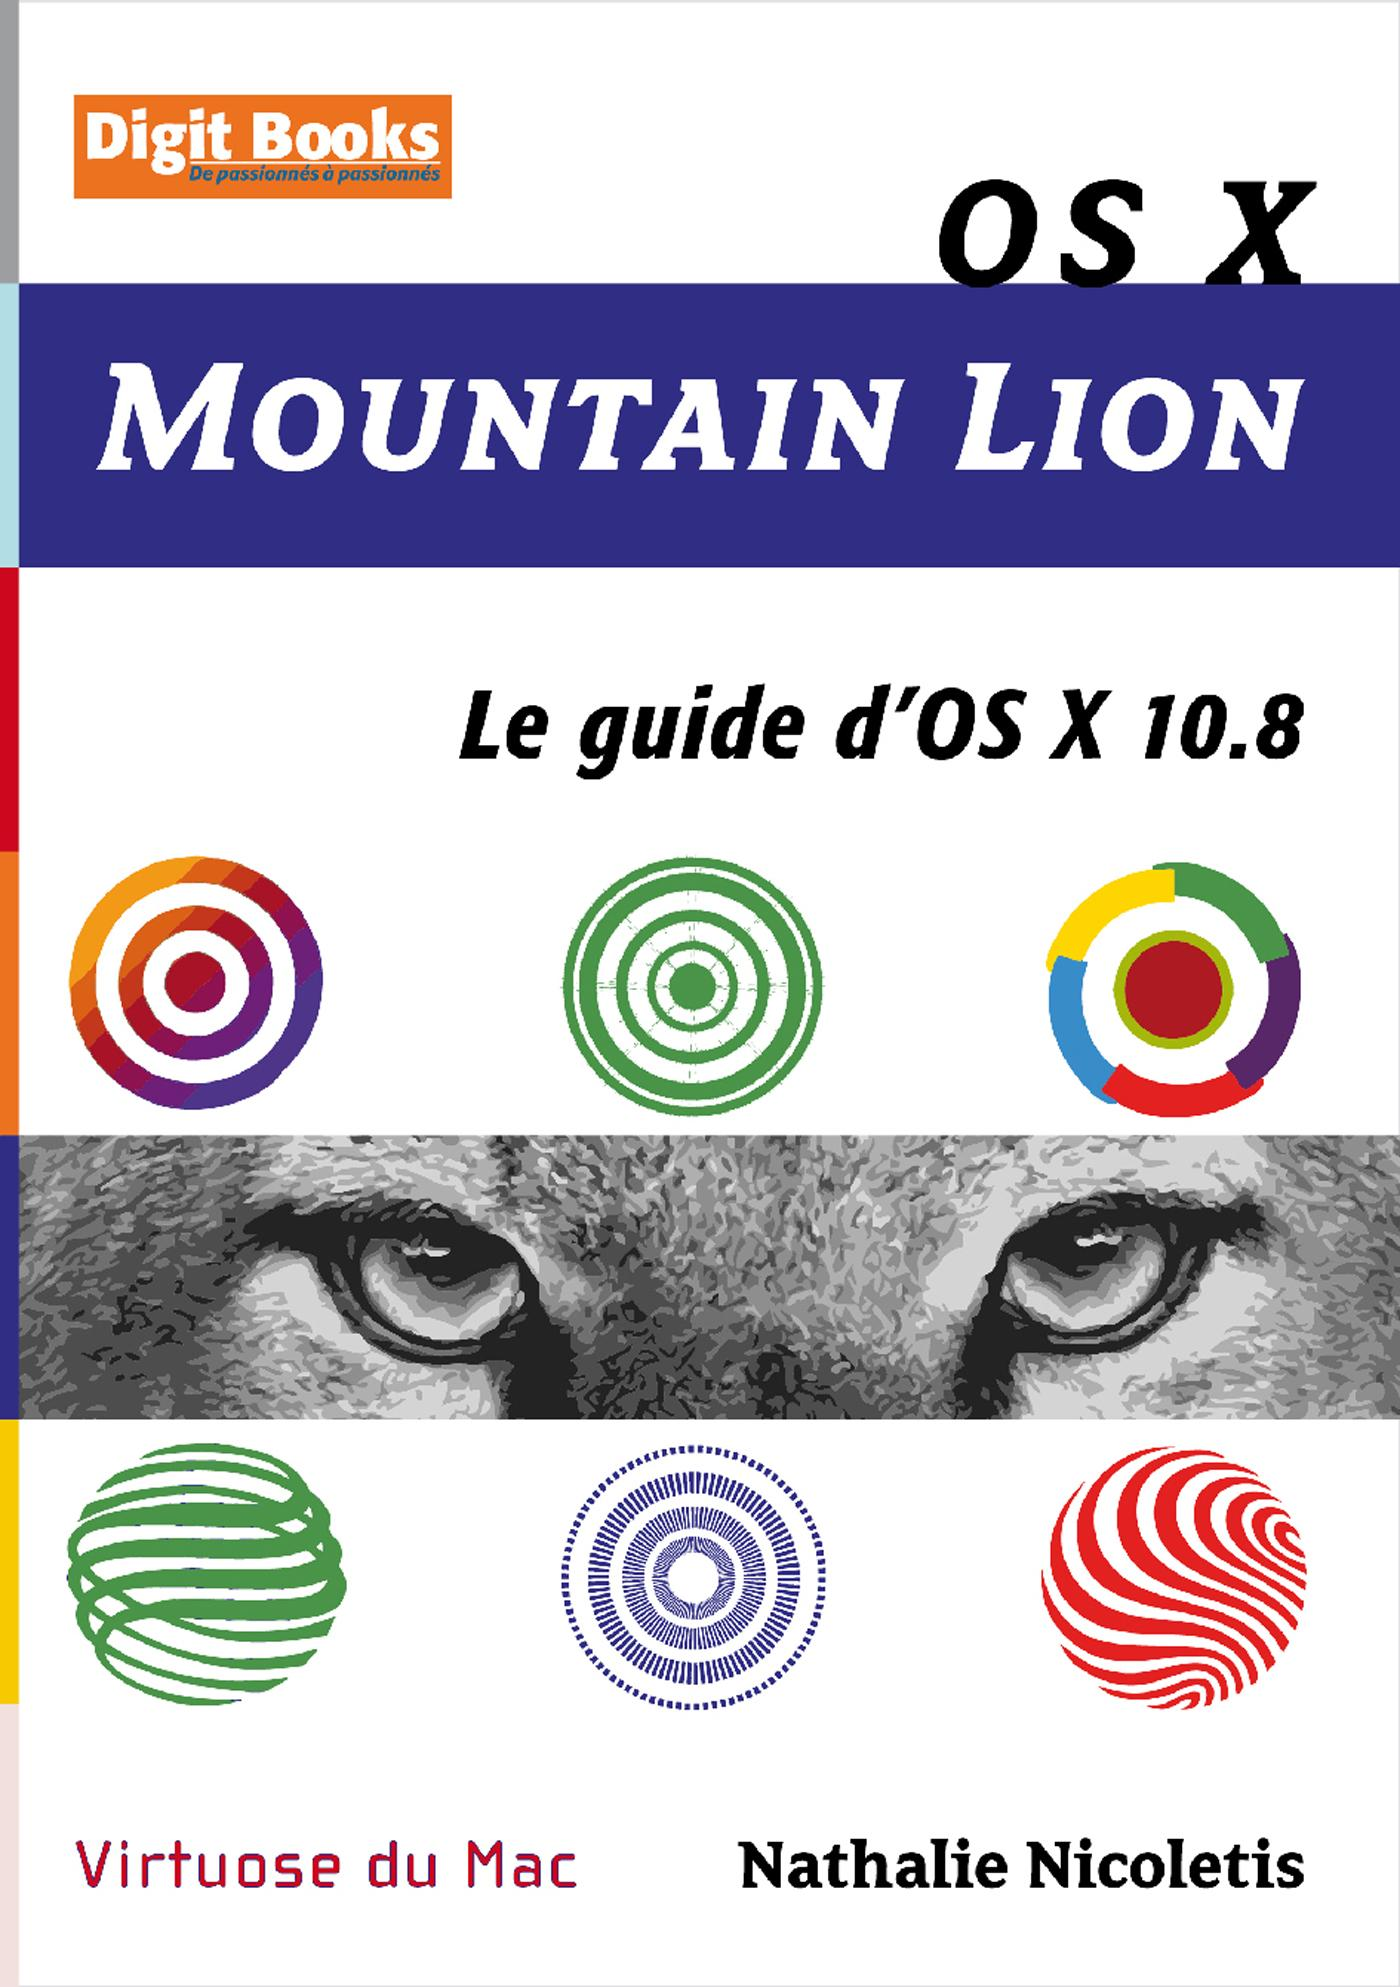 OS X Mountain Lion, LE GUIDE D'OS X 10.8